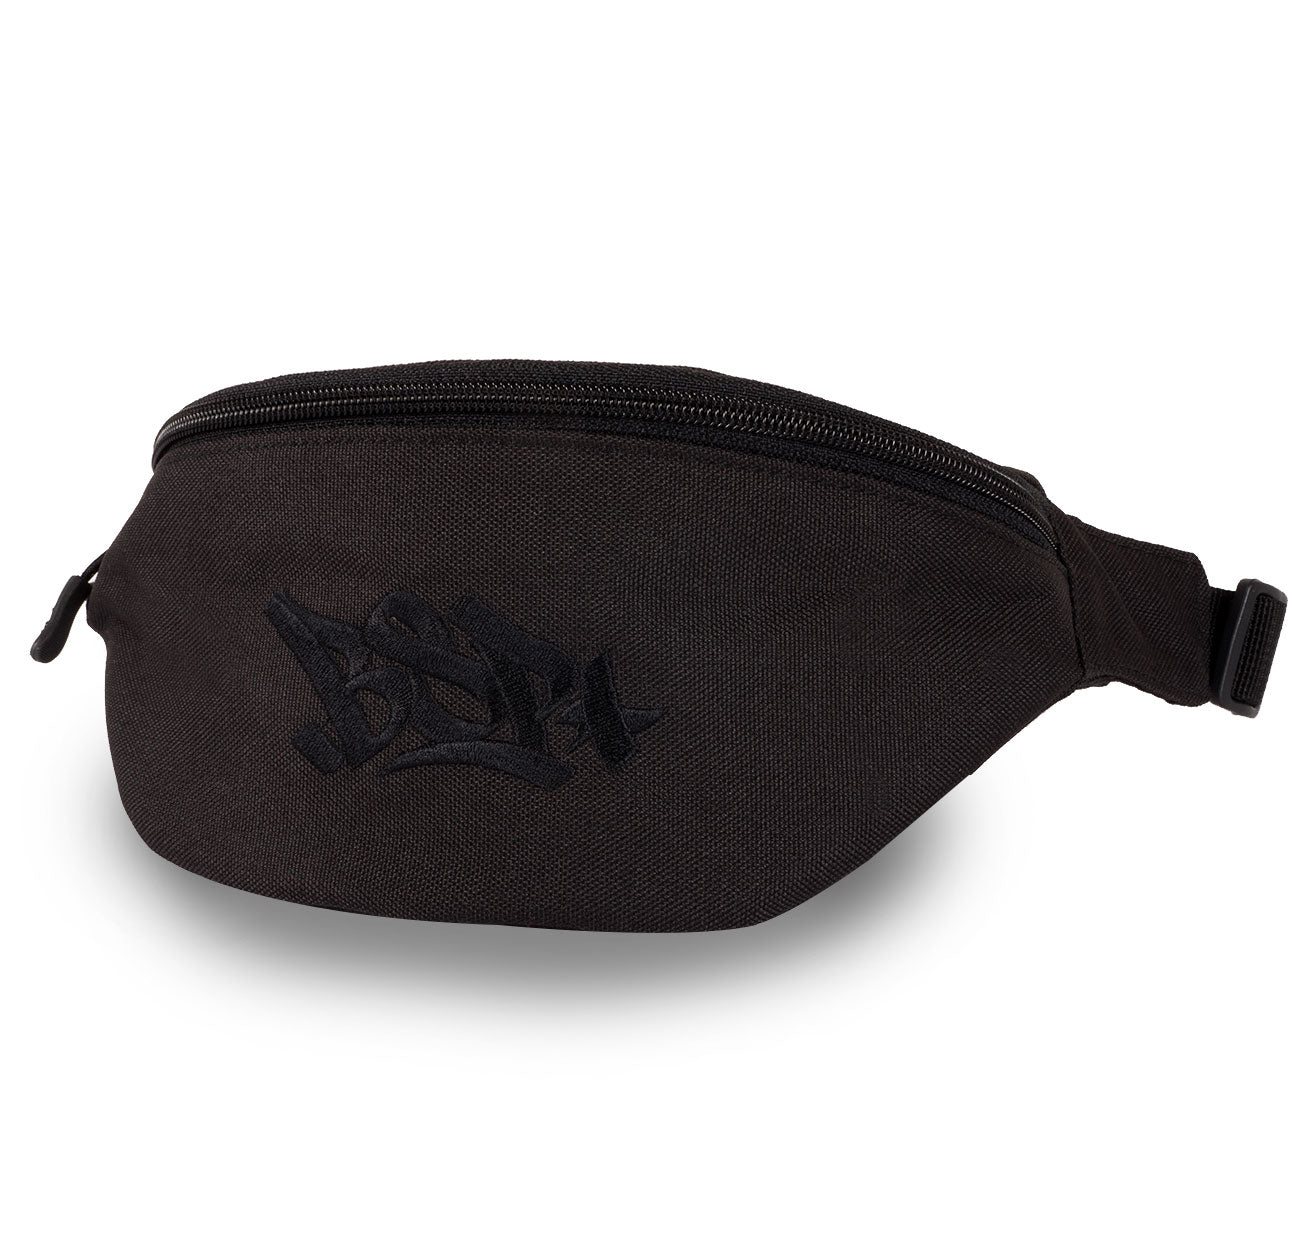 BSP midnight sling bag black